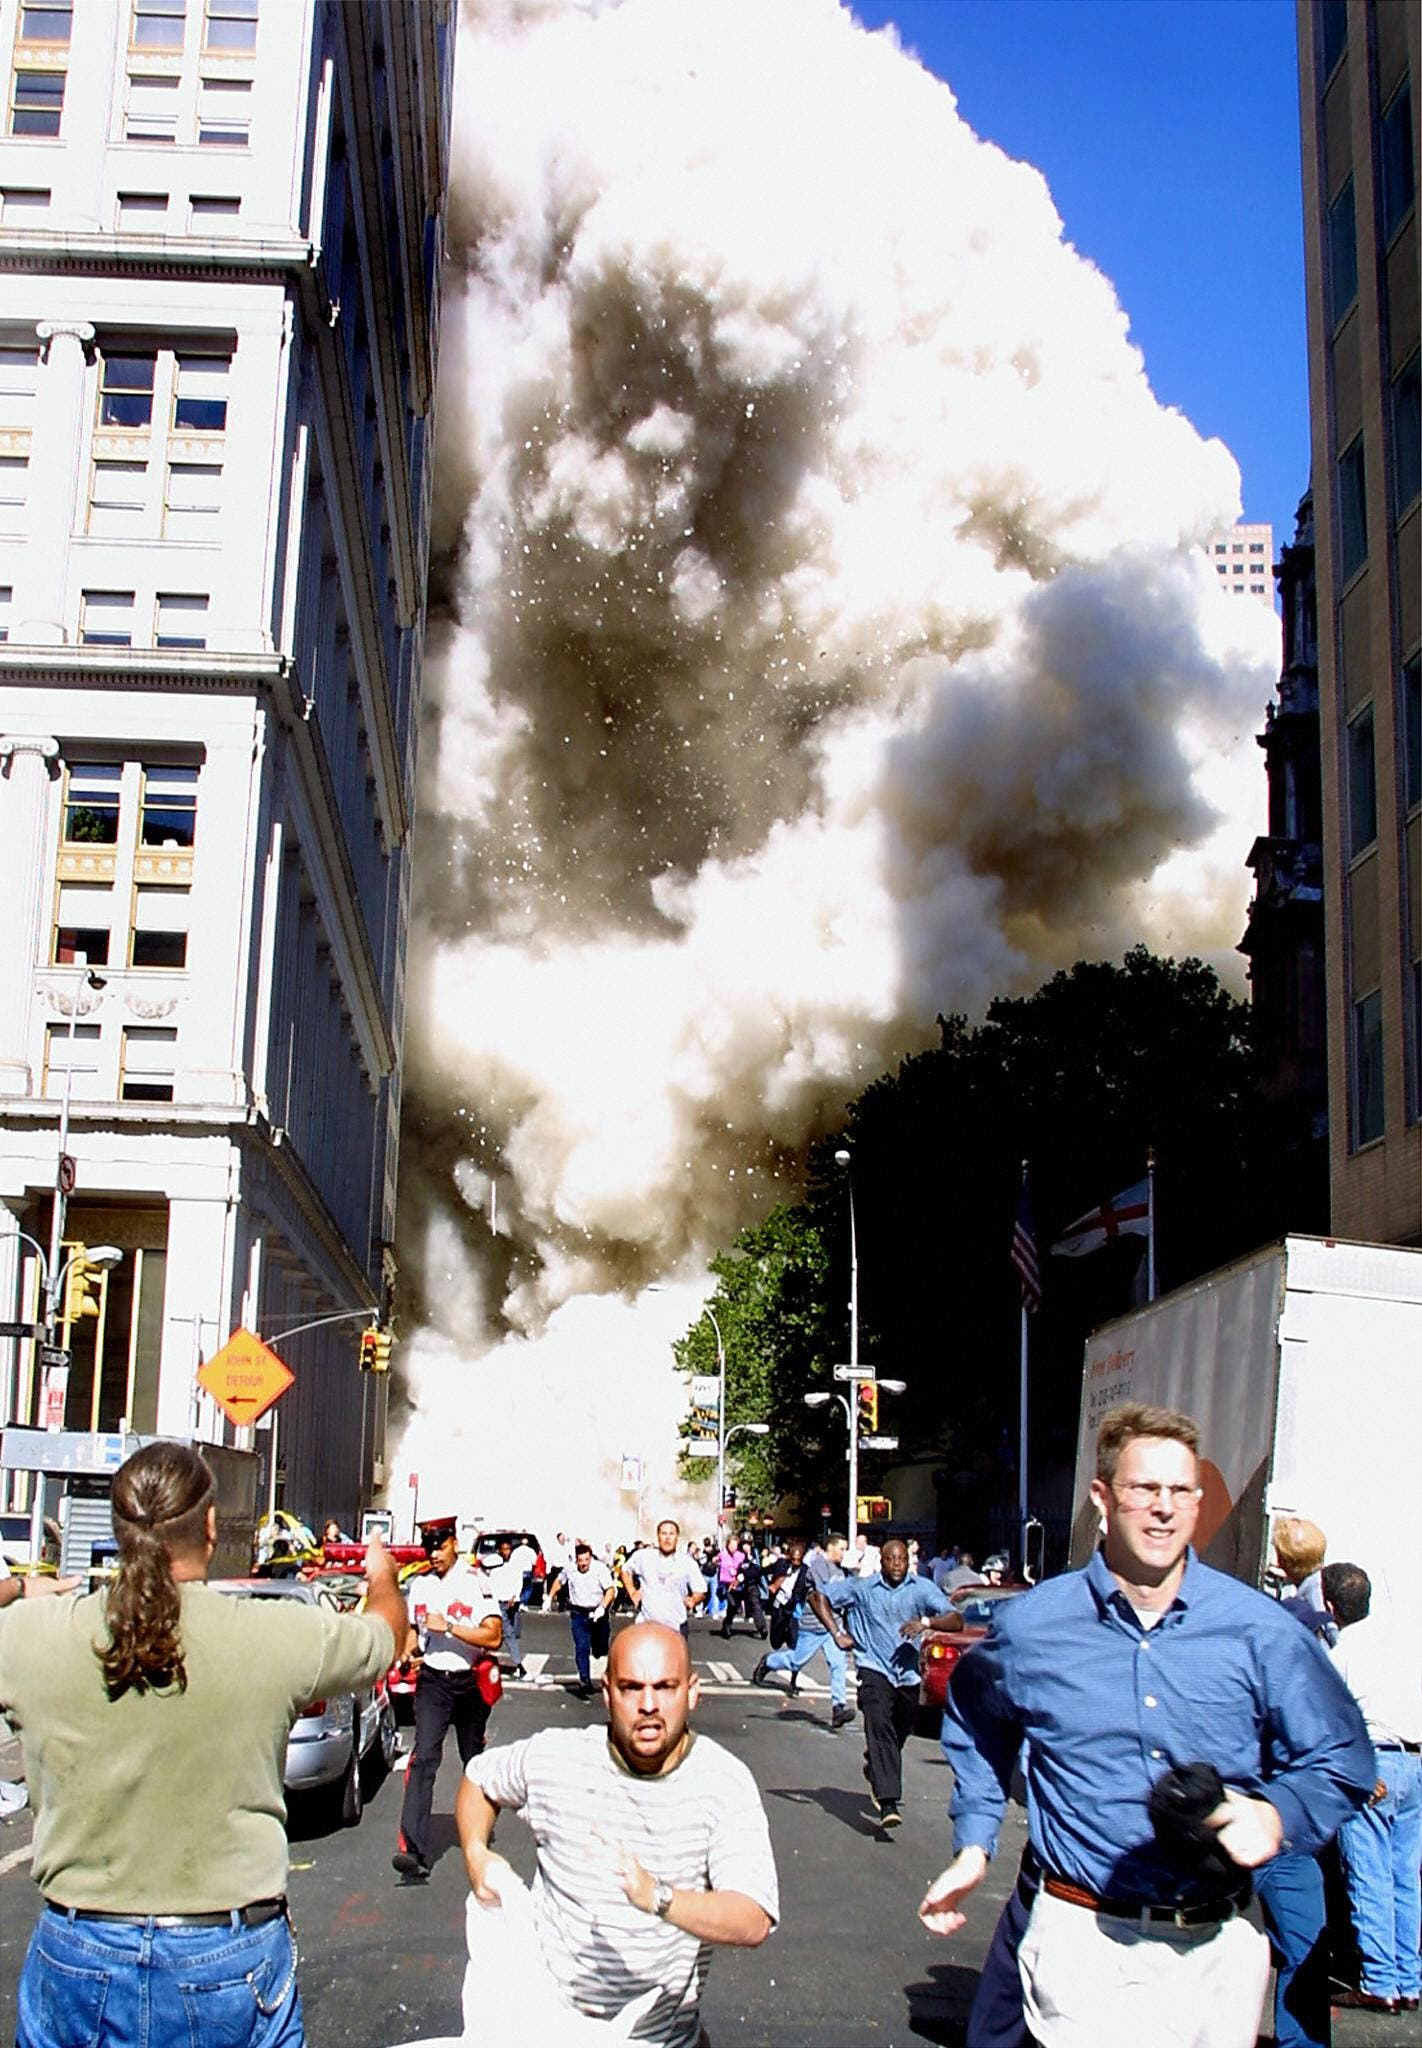 This 11 September 2001 file photo shows pedestrians running from the scene as one of the World Trade Center towers collapses in New York City following a terrorist plane crash on the twin towers. (AFP)